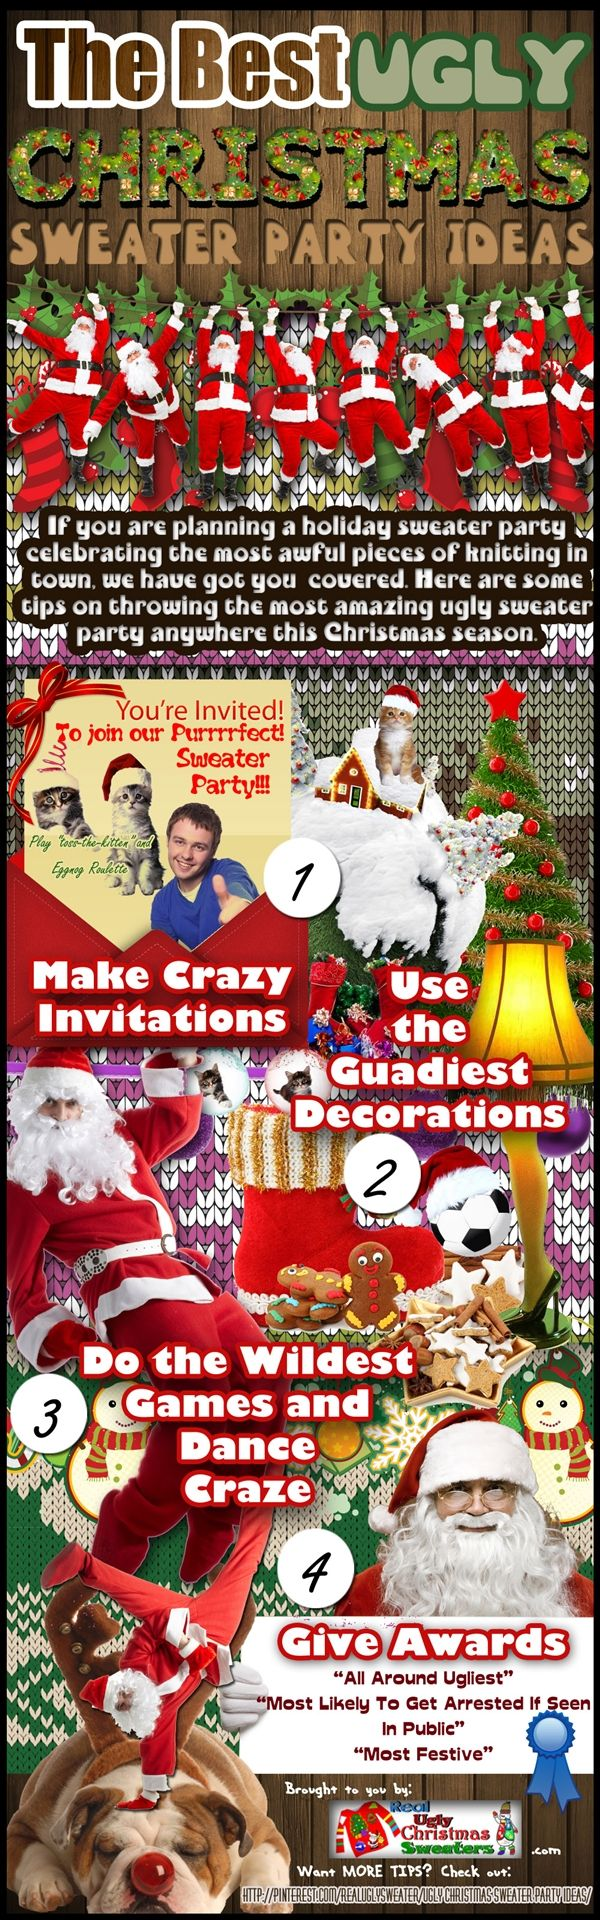 Ugly Christmas Sweater Party Ideas: The Best & Ultimate Guide  [by Realuglychristmassweaters -- via #tipsographic]. More at tipsographic.com